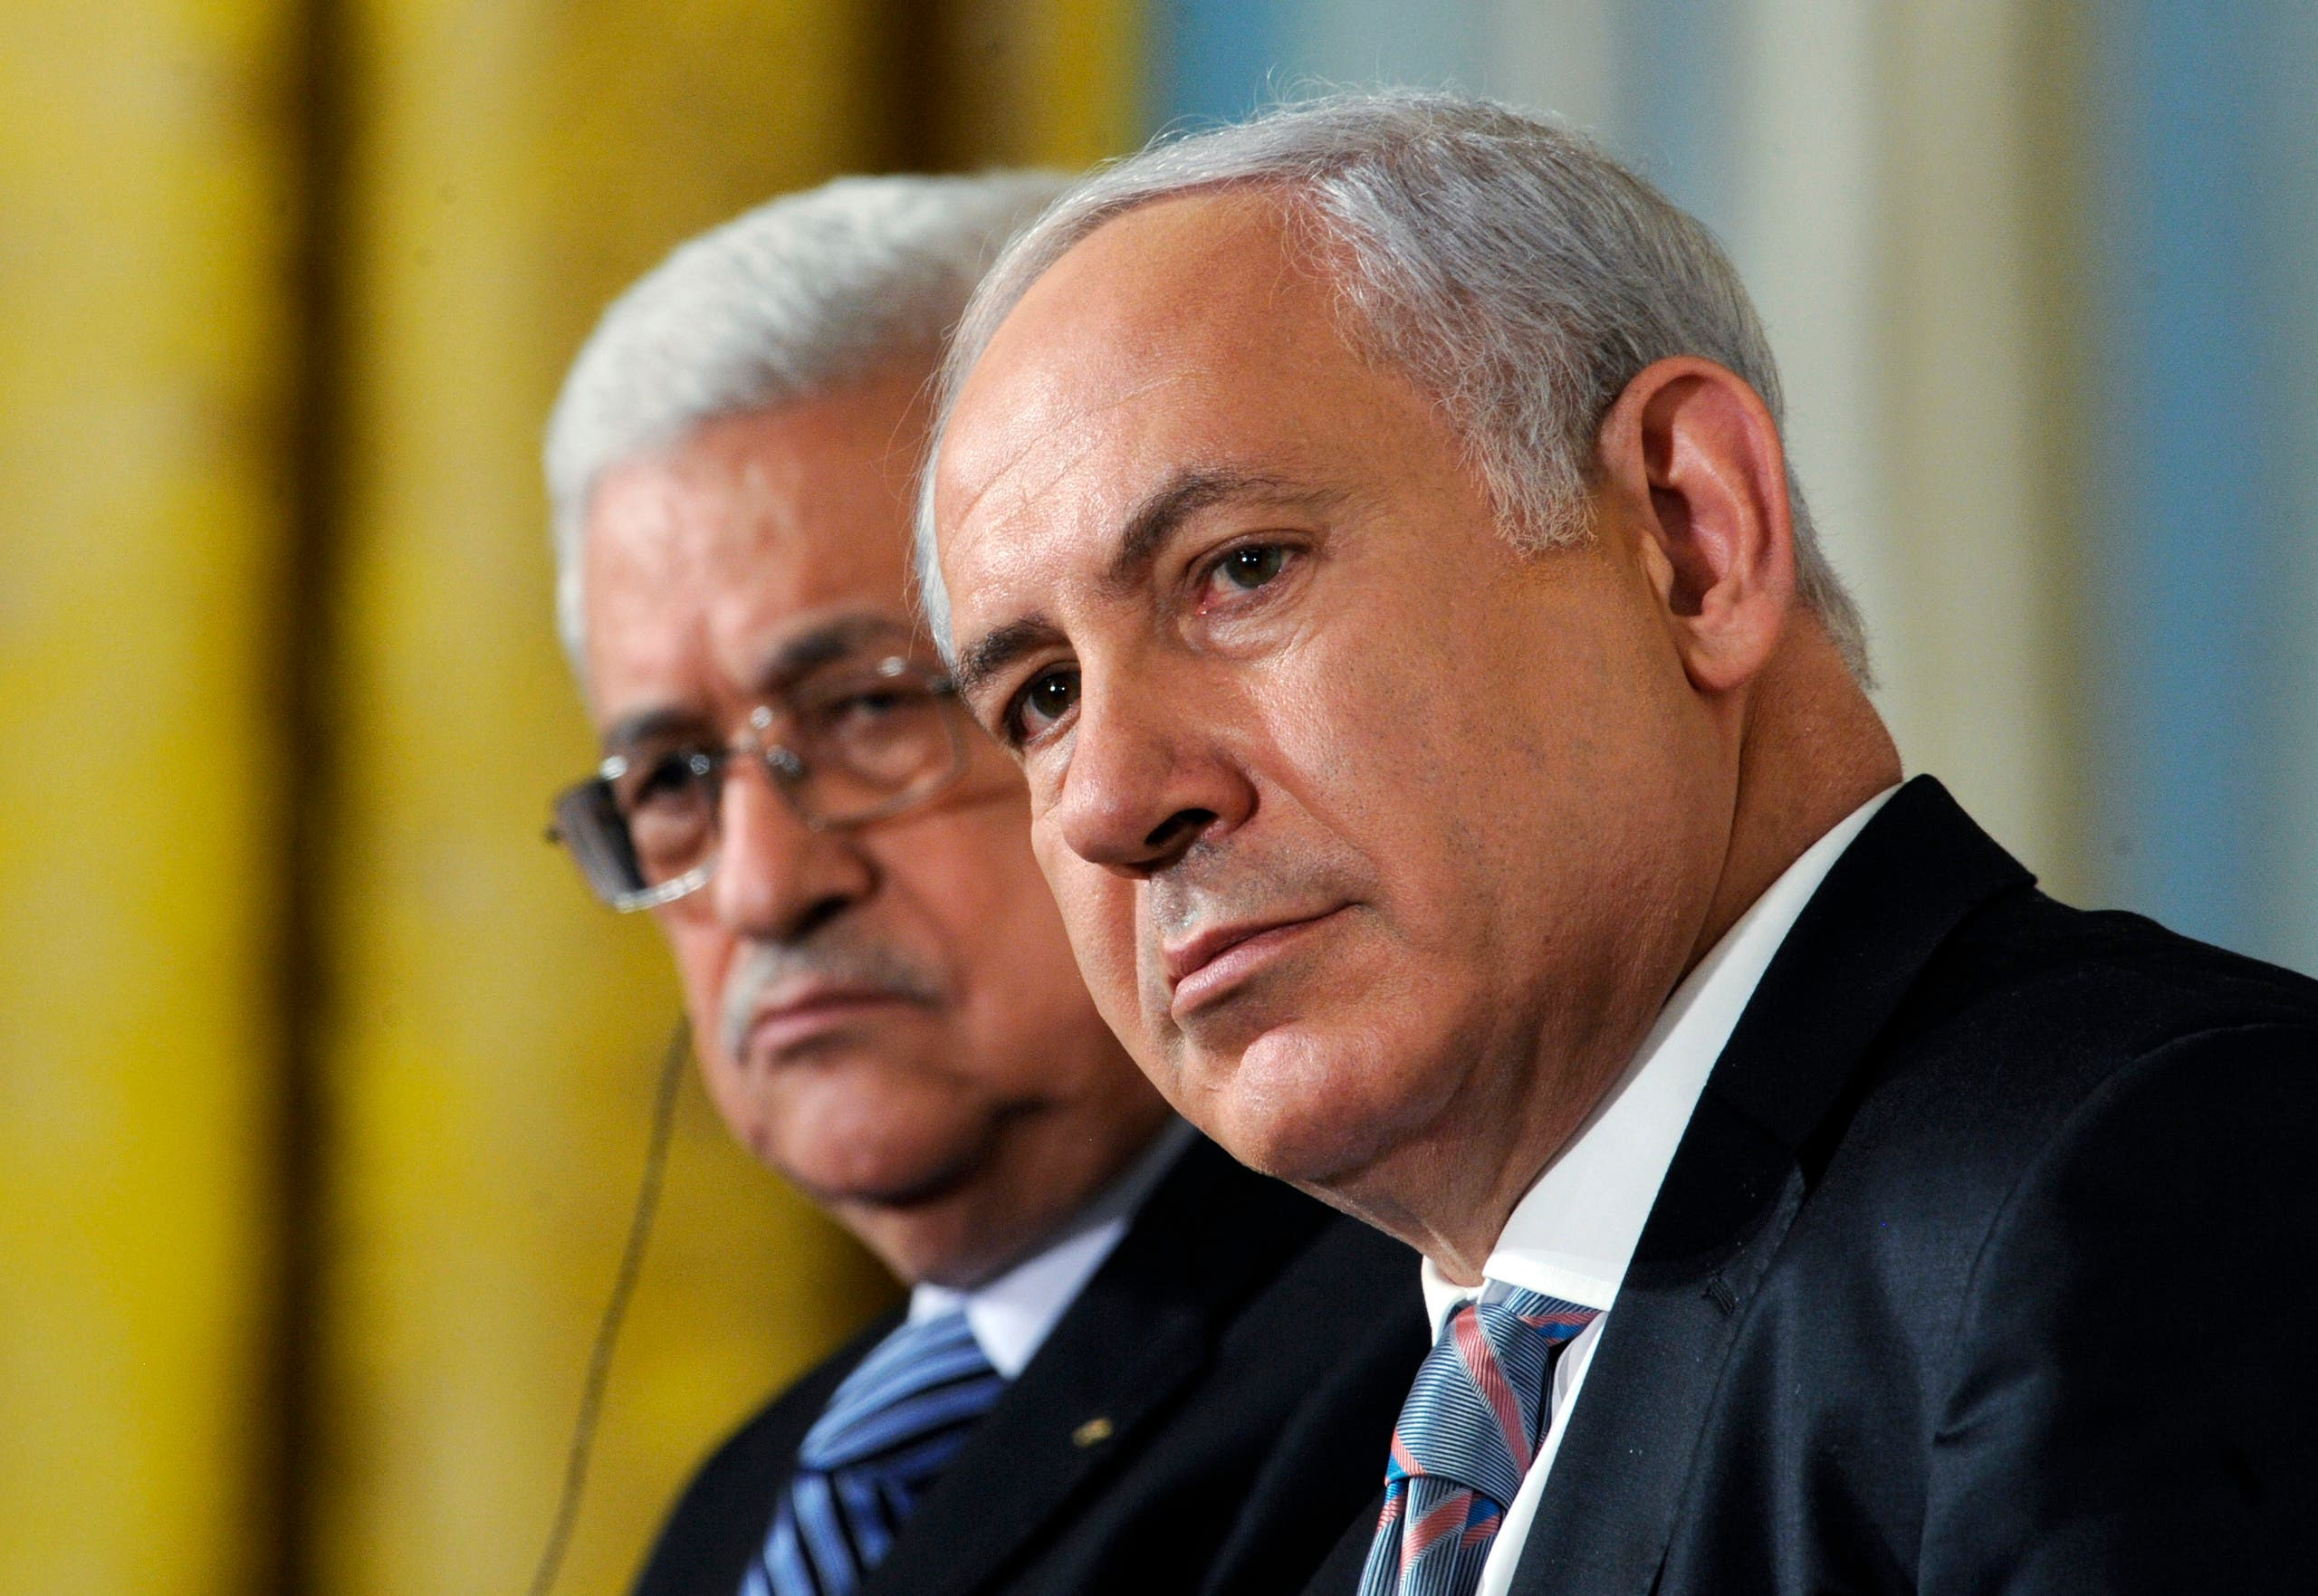 Palestinian President Mahmoud Abbas (L) sits next to Israeli Prime Minister Benjamin Netanyahu in the East Room of the White House in Washington. (File photo: Reuters)